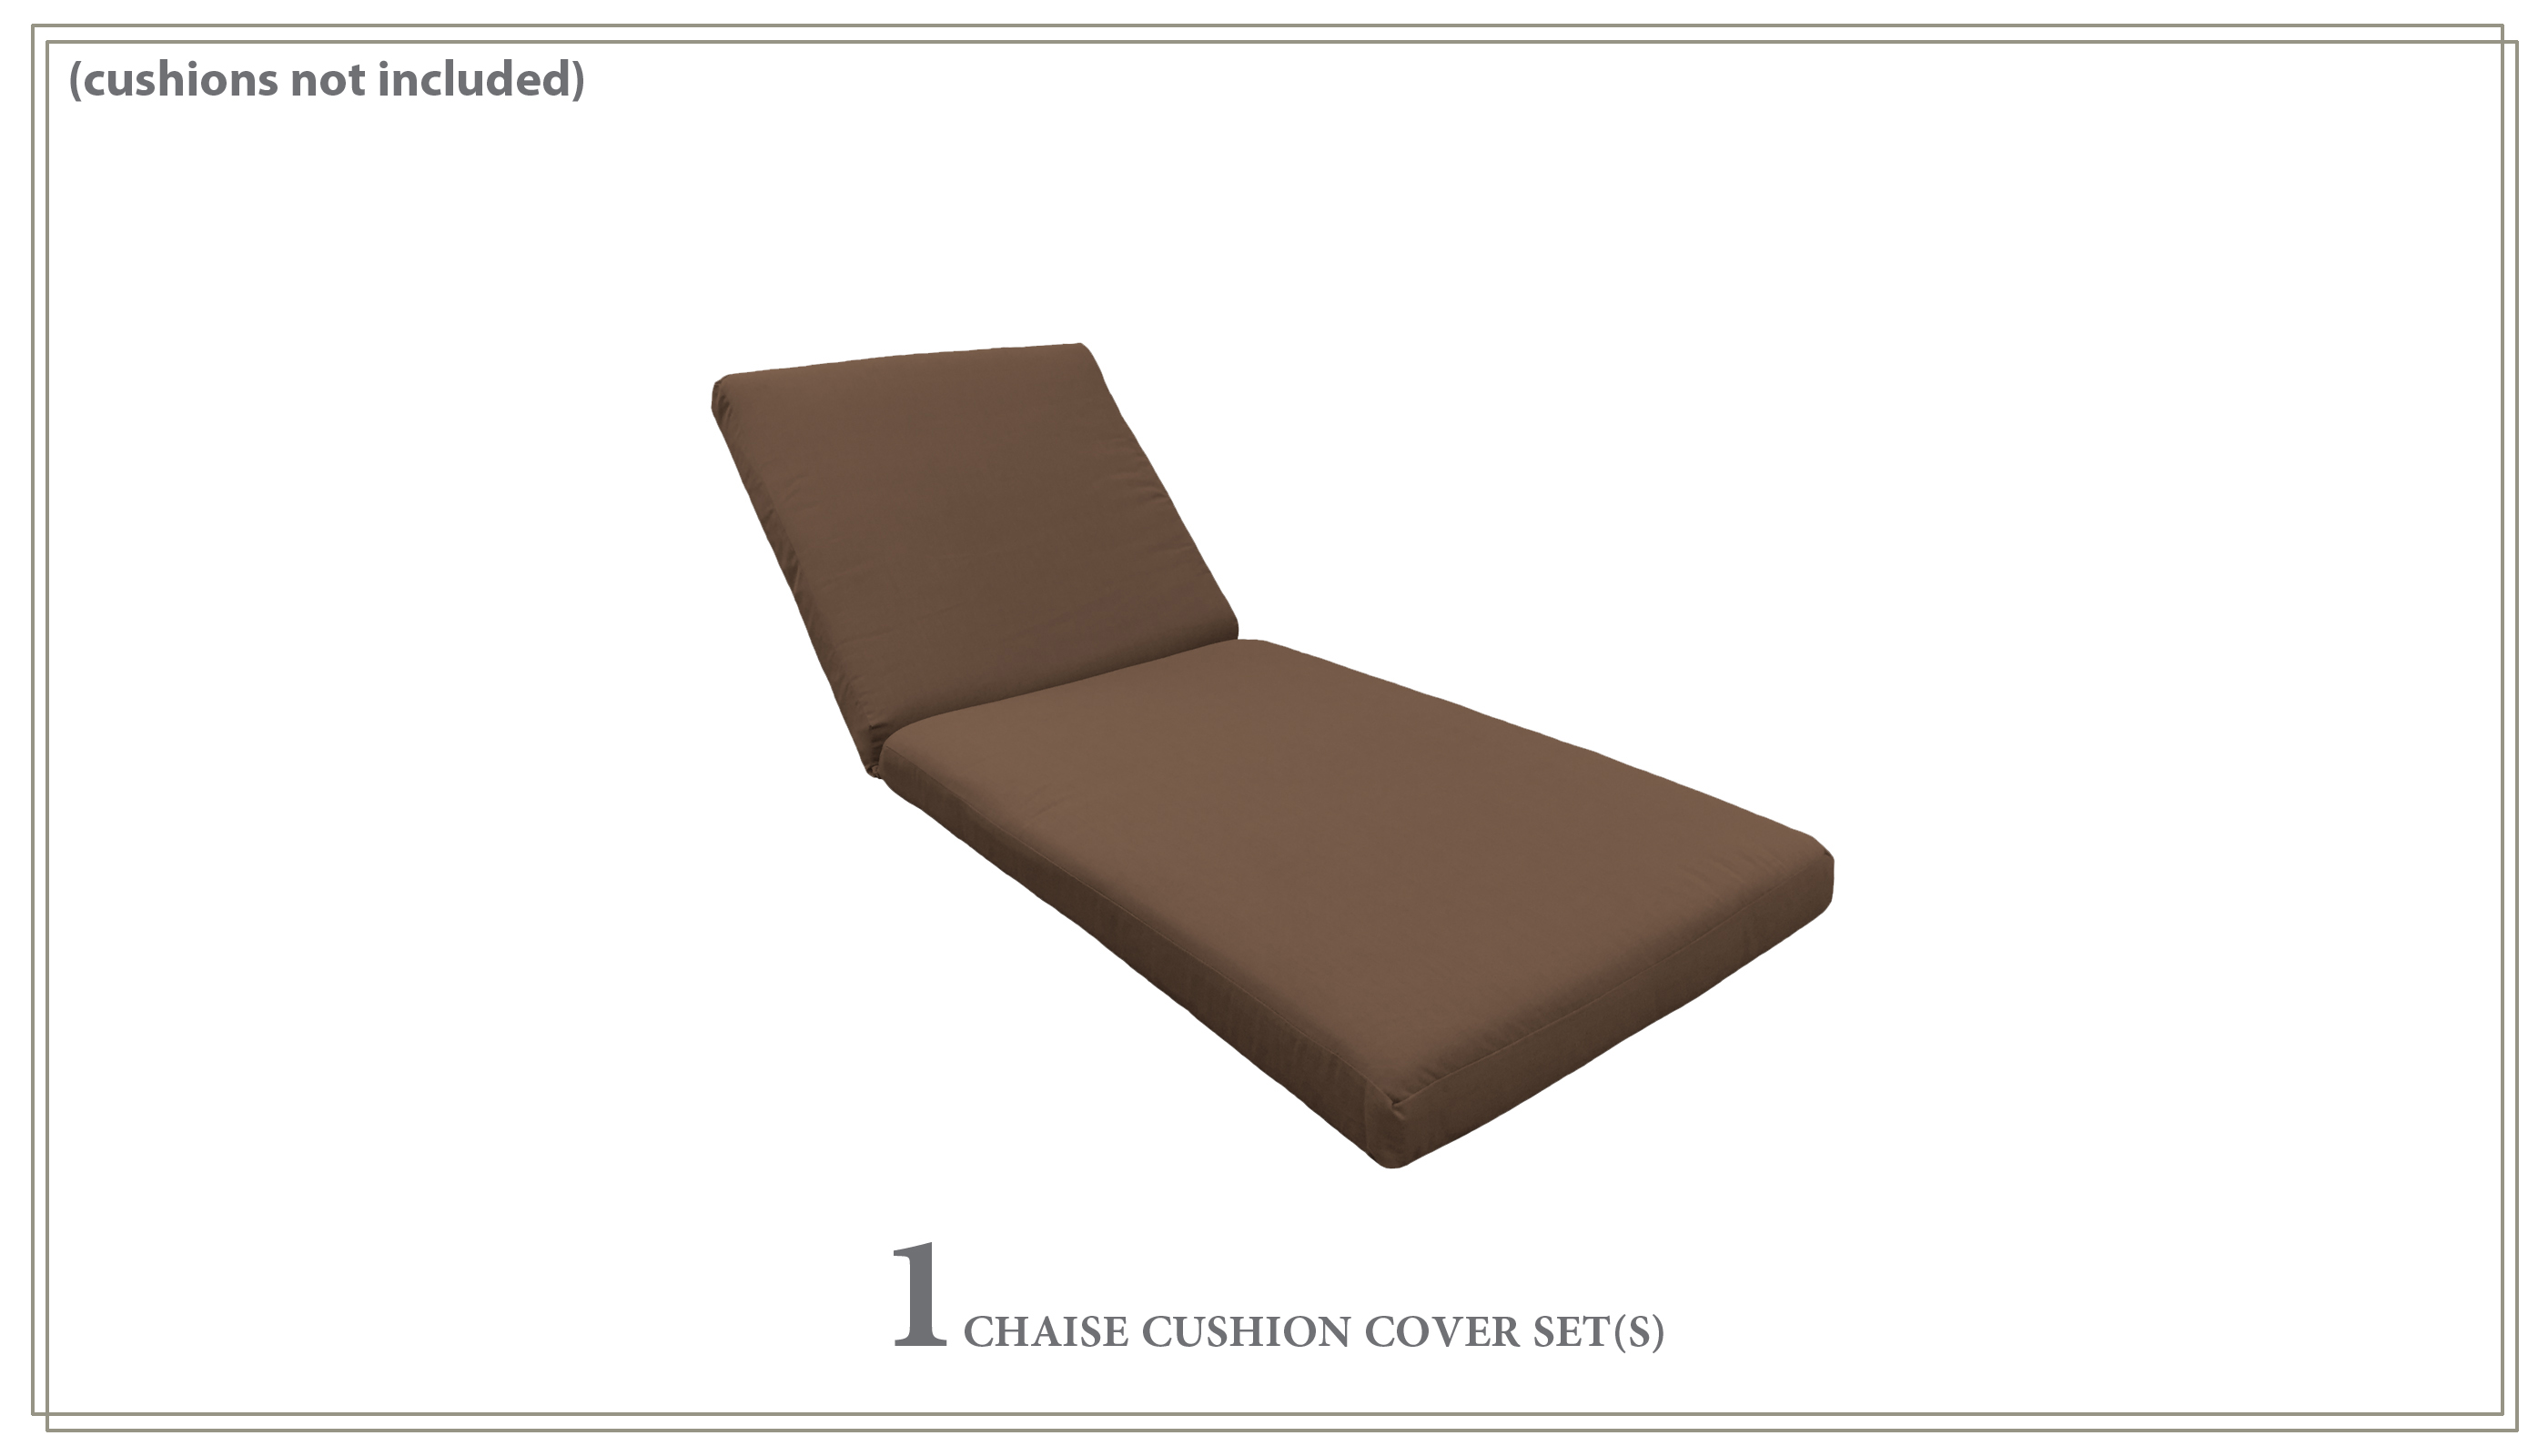 Covers for Chaise Cushions - Design Furnishings